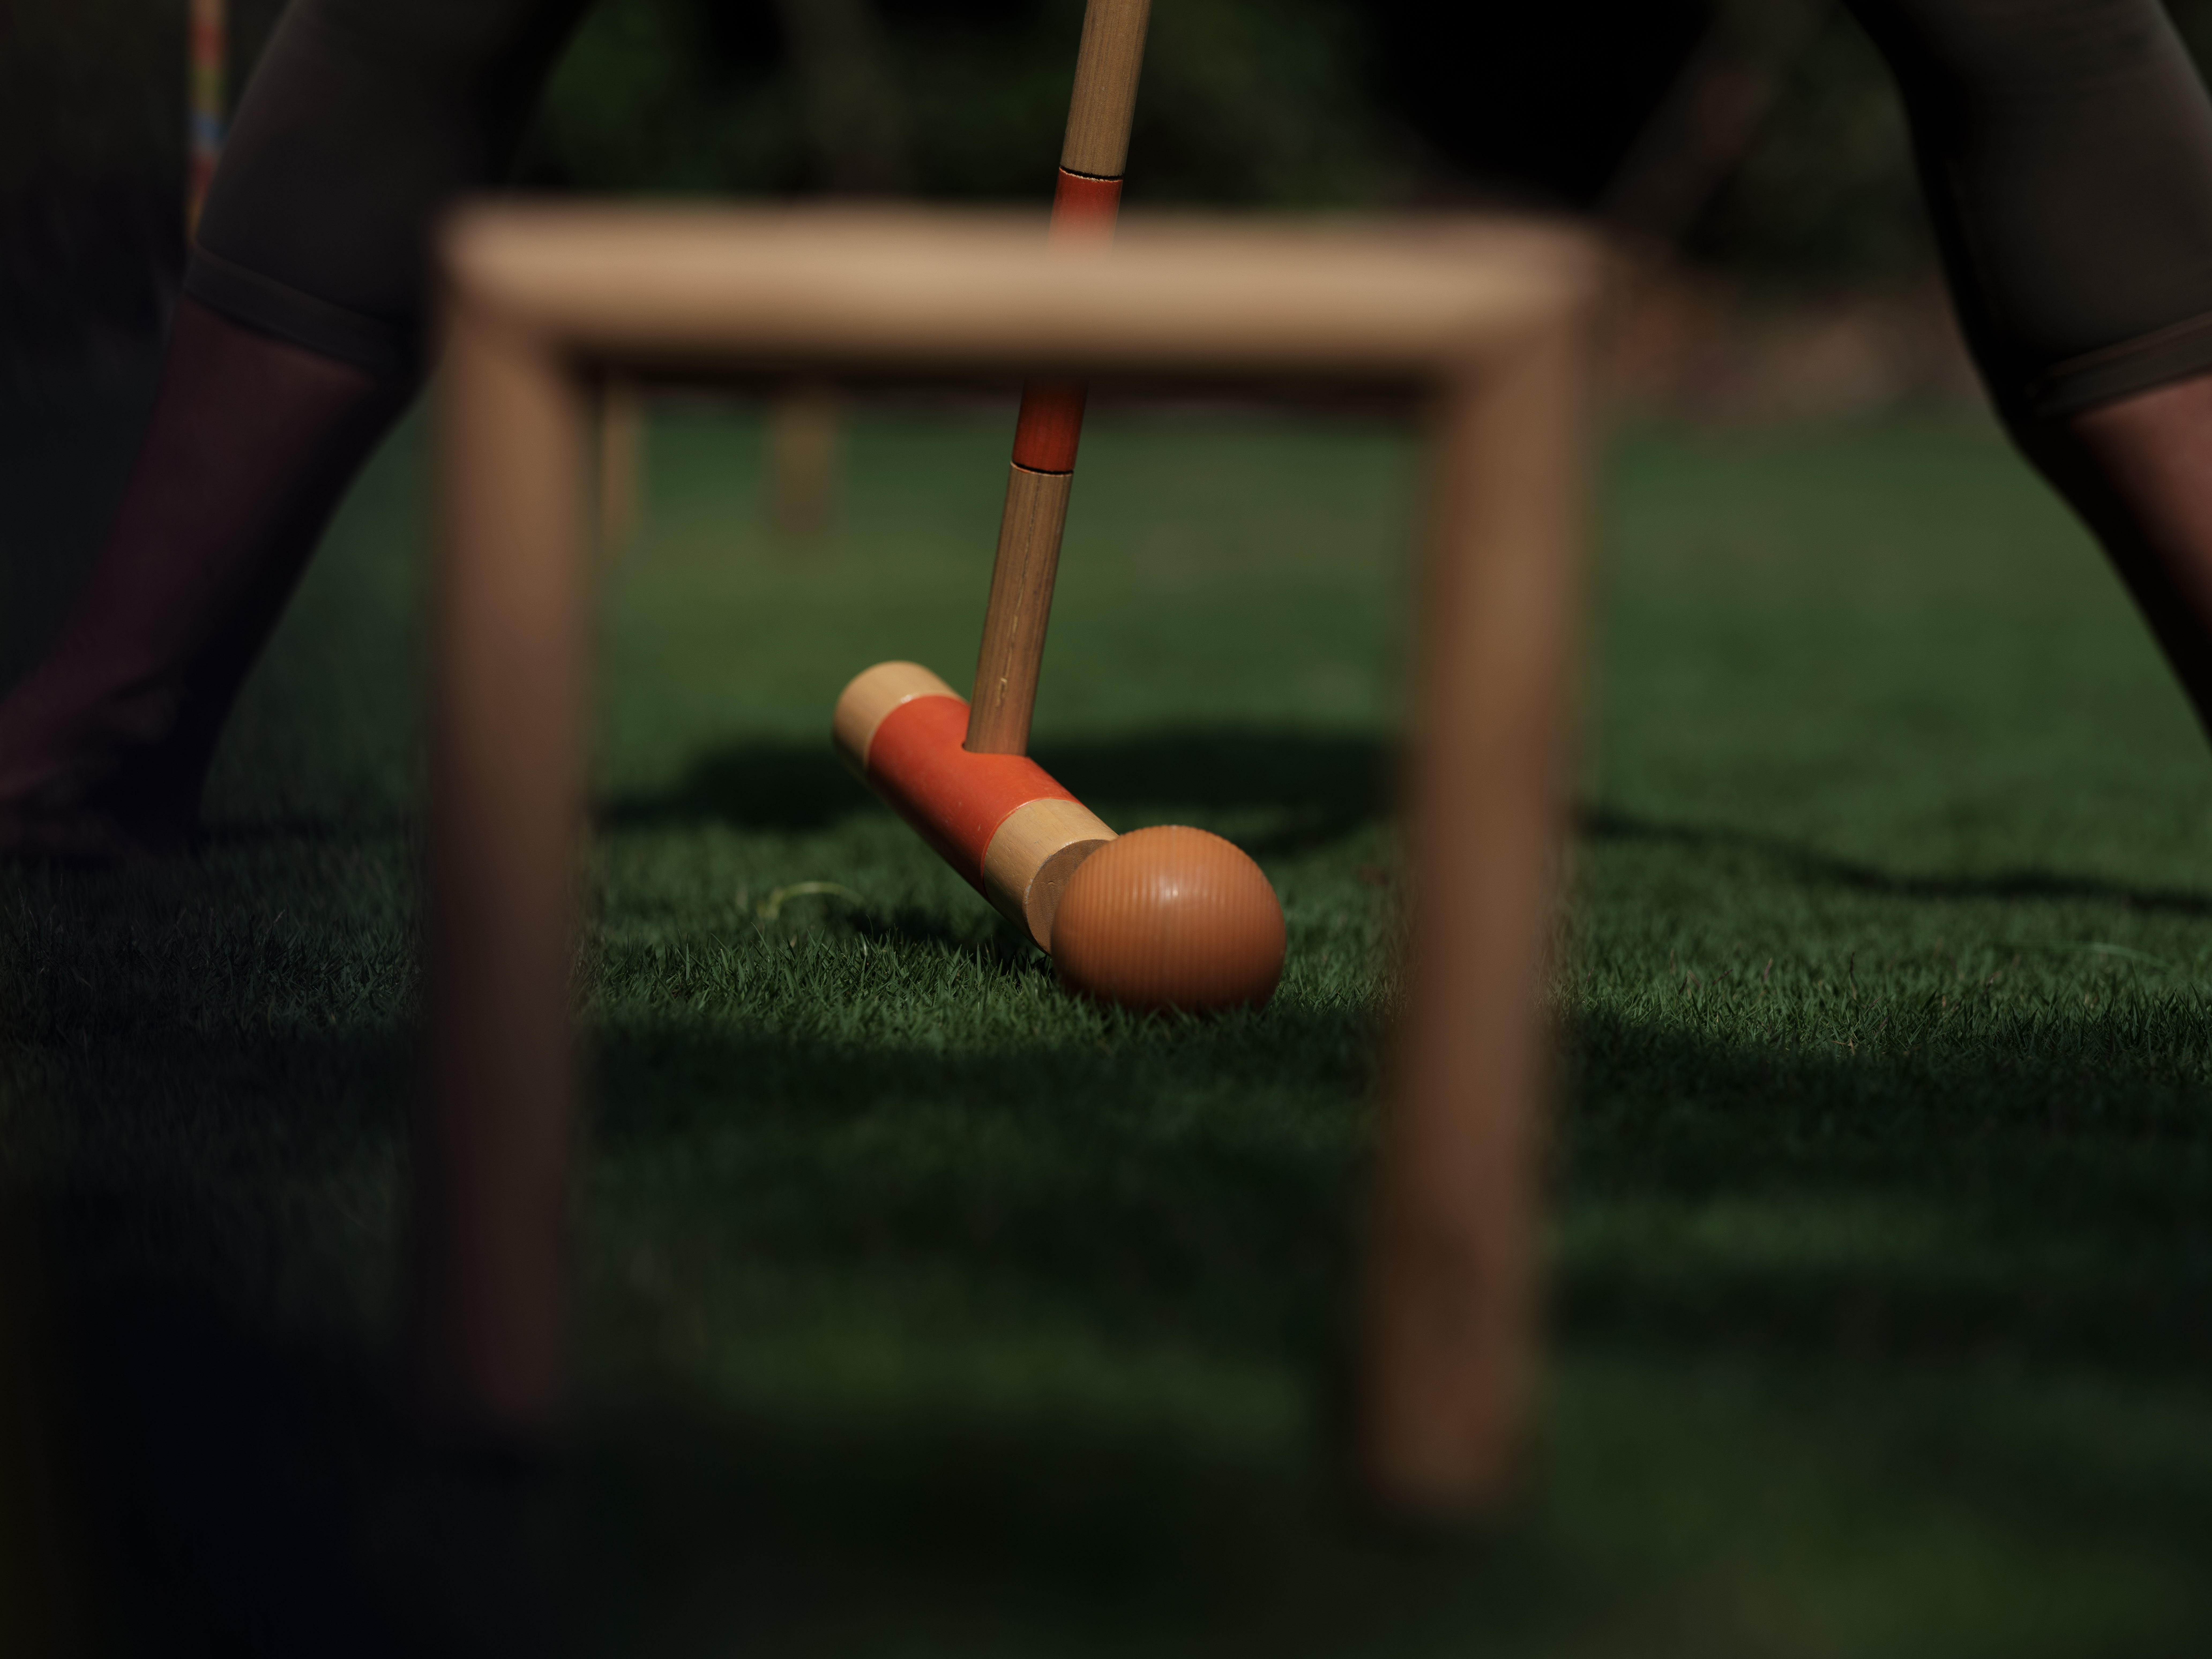 woman_hitting_orange_ball_with_wooden_mallet_in_grass